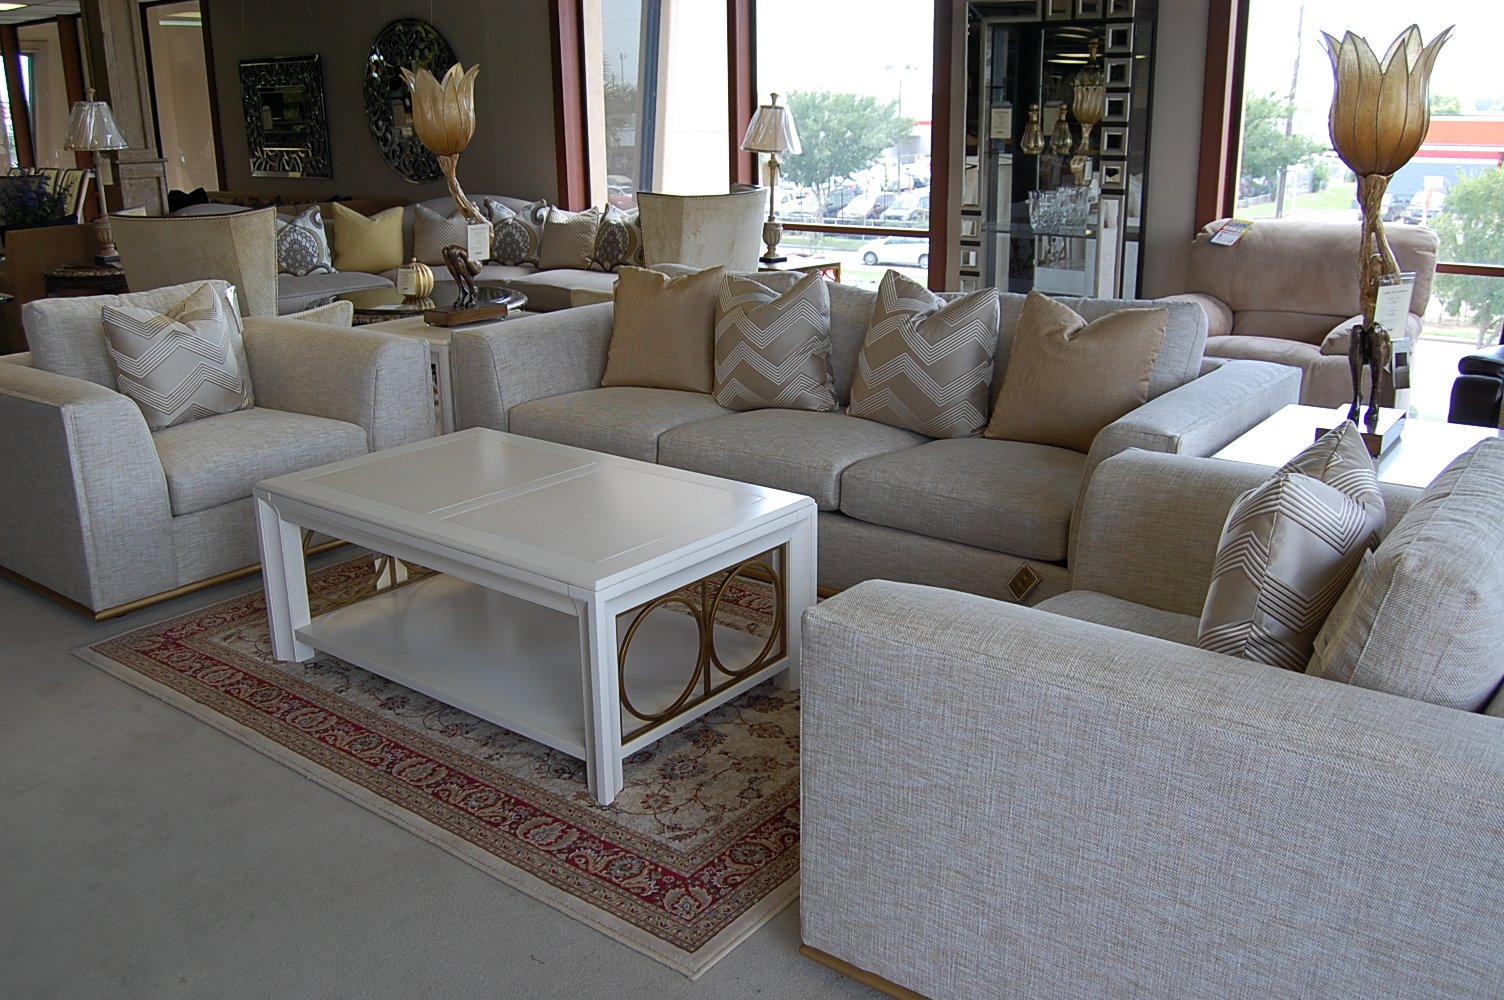 Living room furniture sale houston tx luxury furniture - Unique living room furniture ...